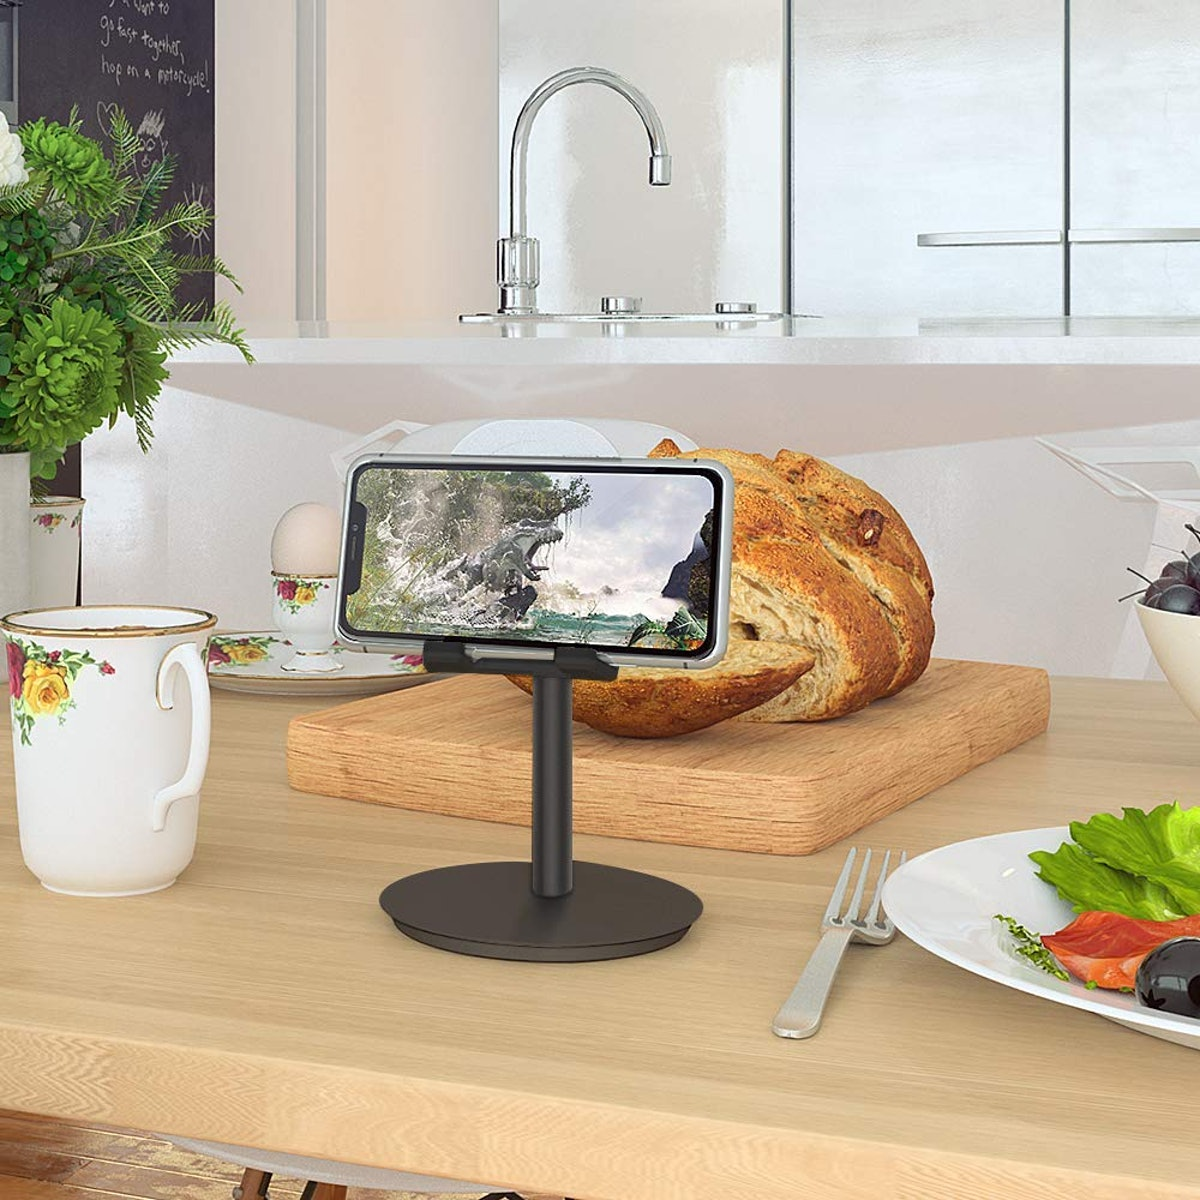 Klearlook Cell Phone Stand